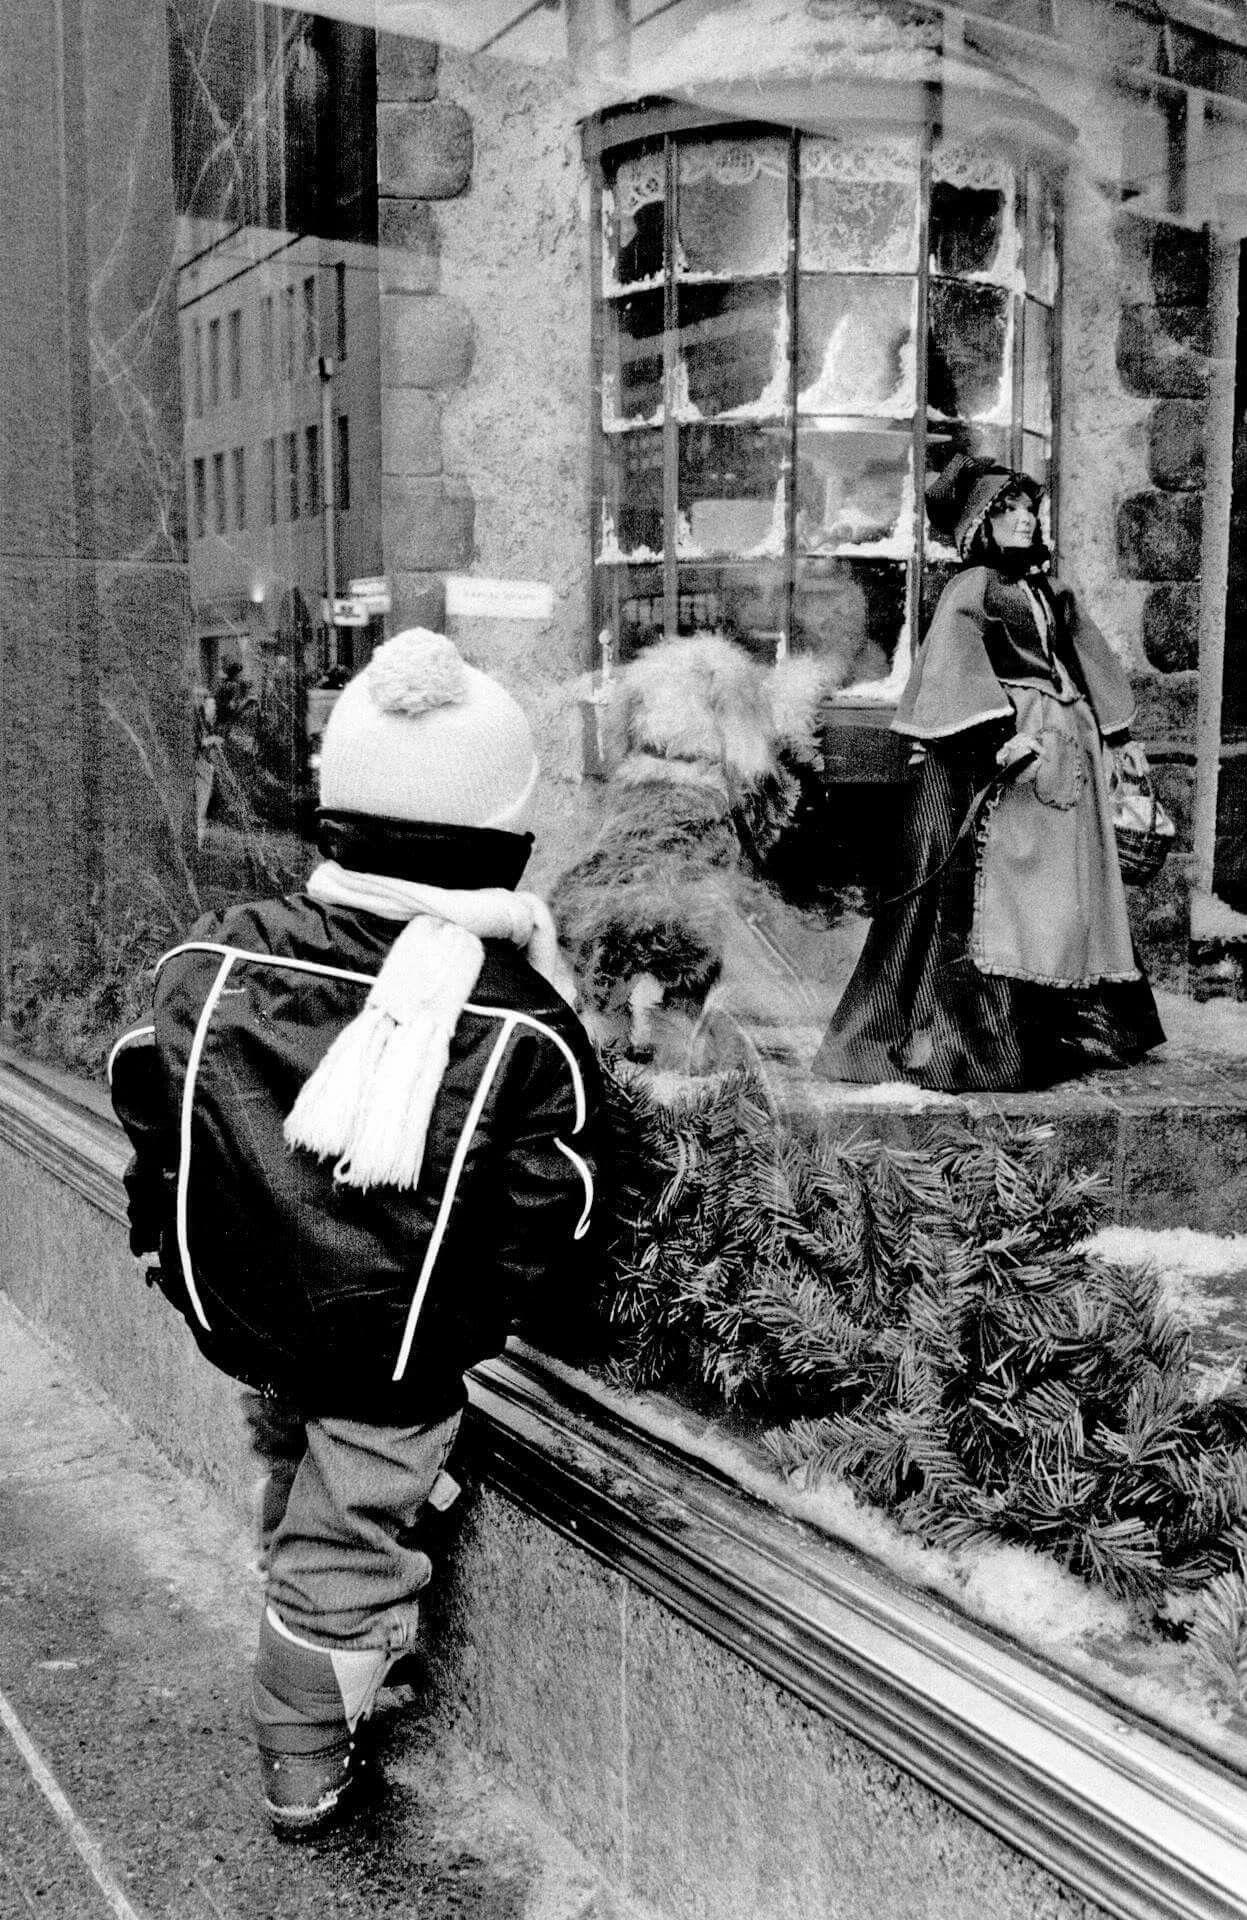 """""""Lost in thought: Shawn Hall, 3, is absorbed by a window display at Simpson's."""" Photo by Dick Loek, Dec. 19, 1988. - Courtesy of Toronto Public Library & the Toronto Star Archives."""